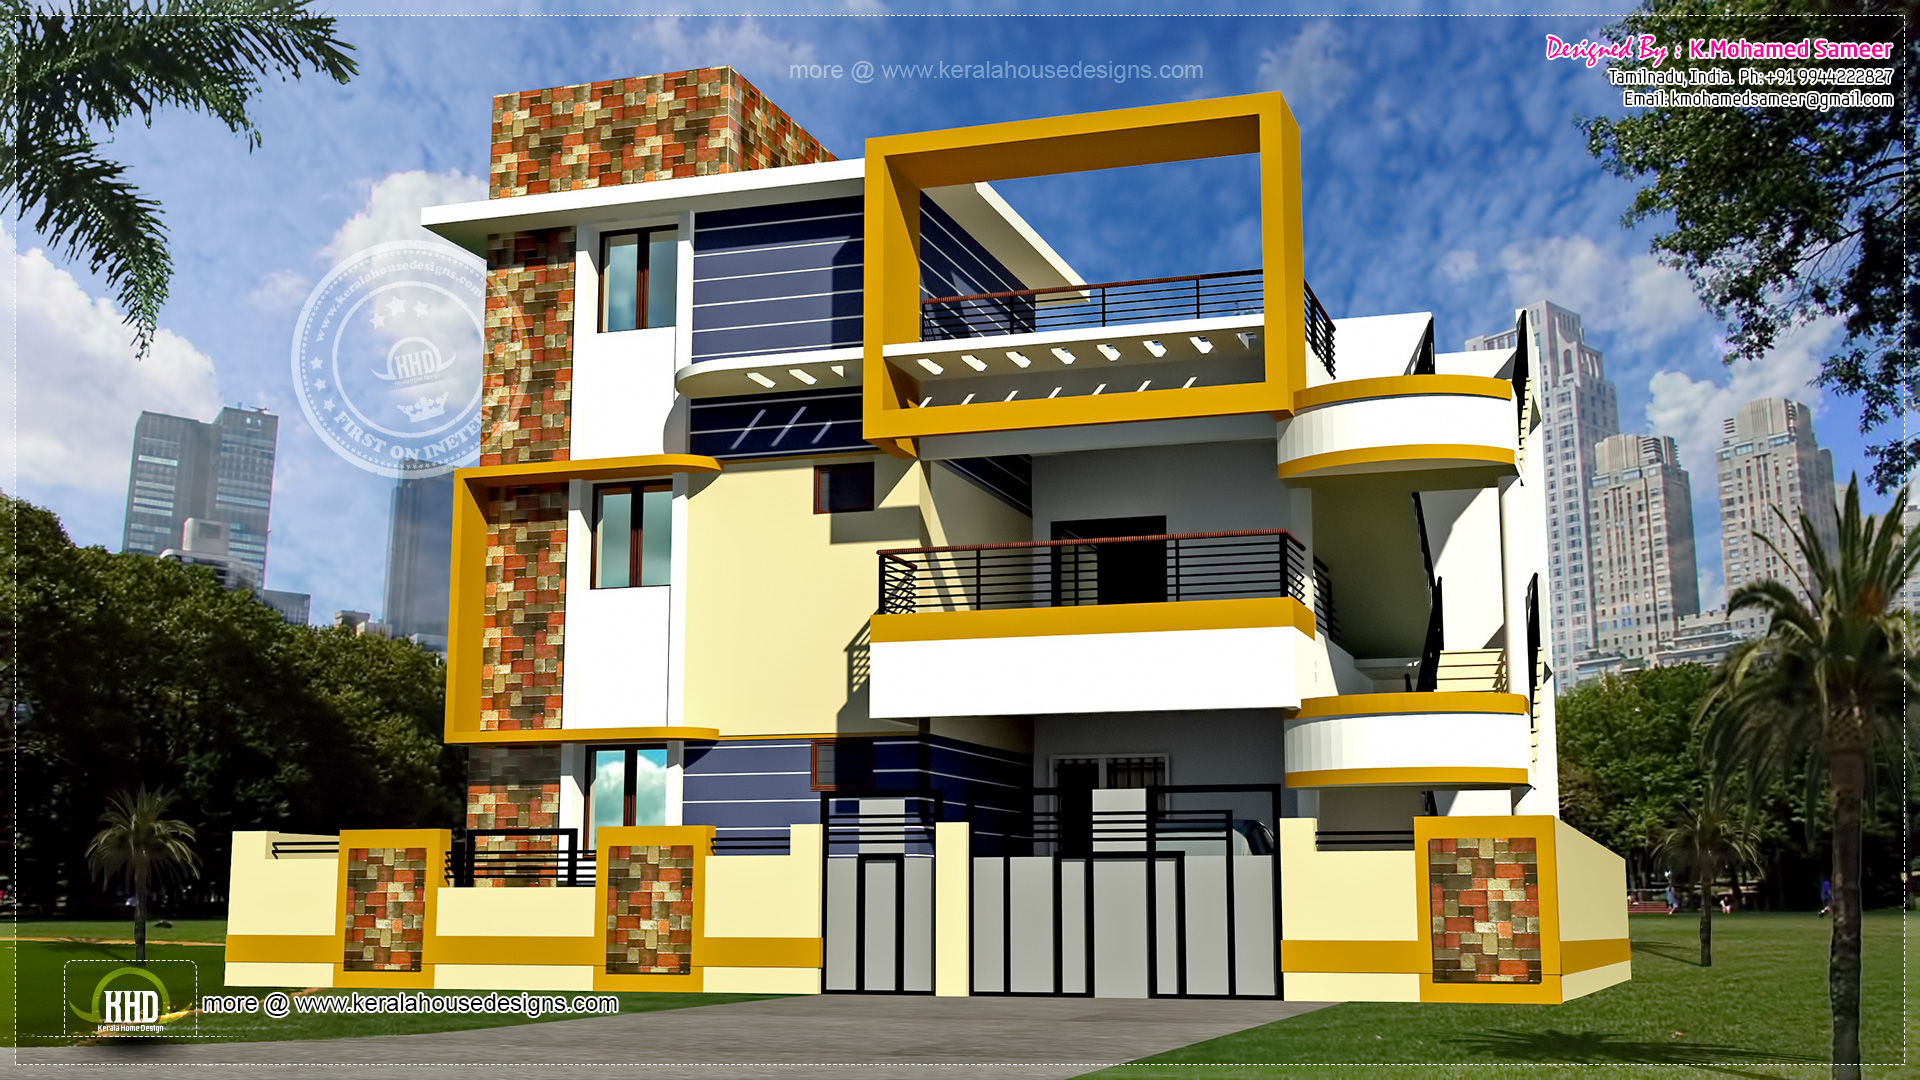 Modern 3 floor tamilnadu house design kerala home design for Single floor house designs tamilnadu